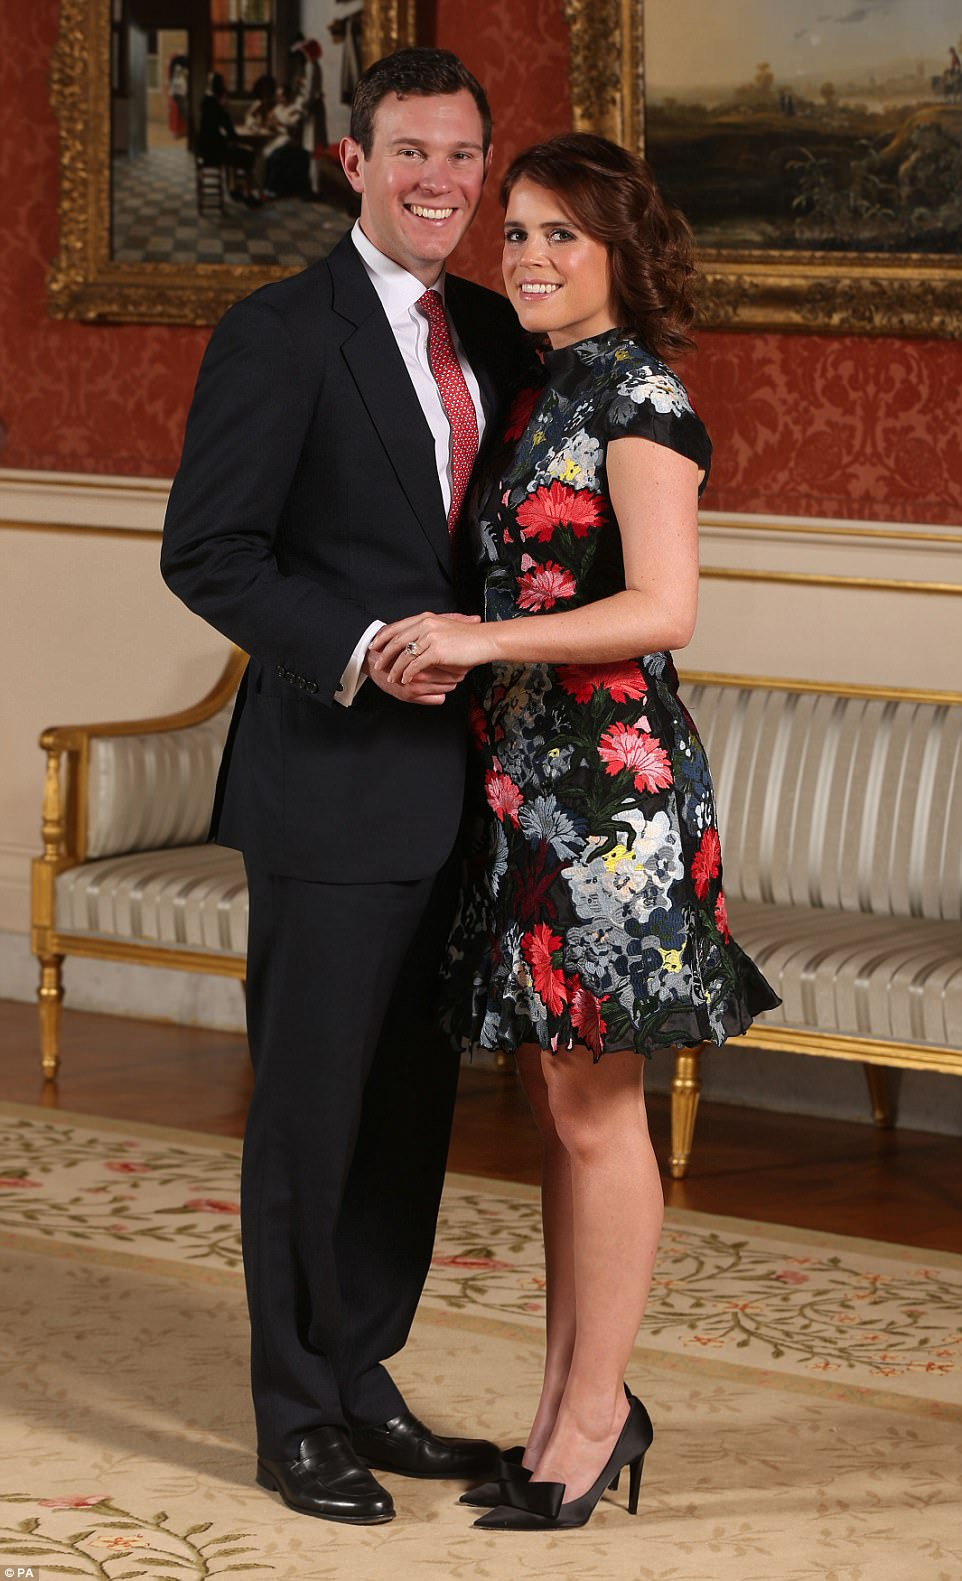 Princess Eugenie and Jack Brooksbank in the Picture Gallery at Buckingham Palace in London after they announced their engagement. The Princess opted for an Erdem dress and Jimmy Choo shoes